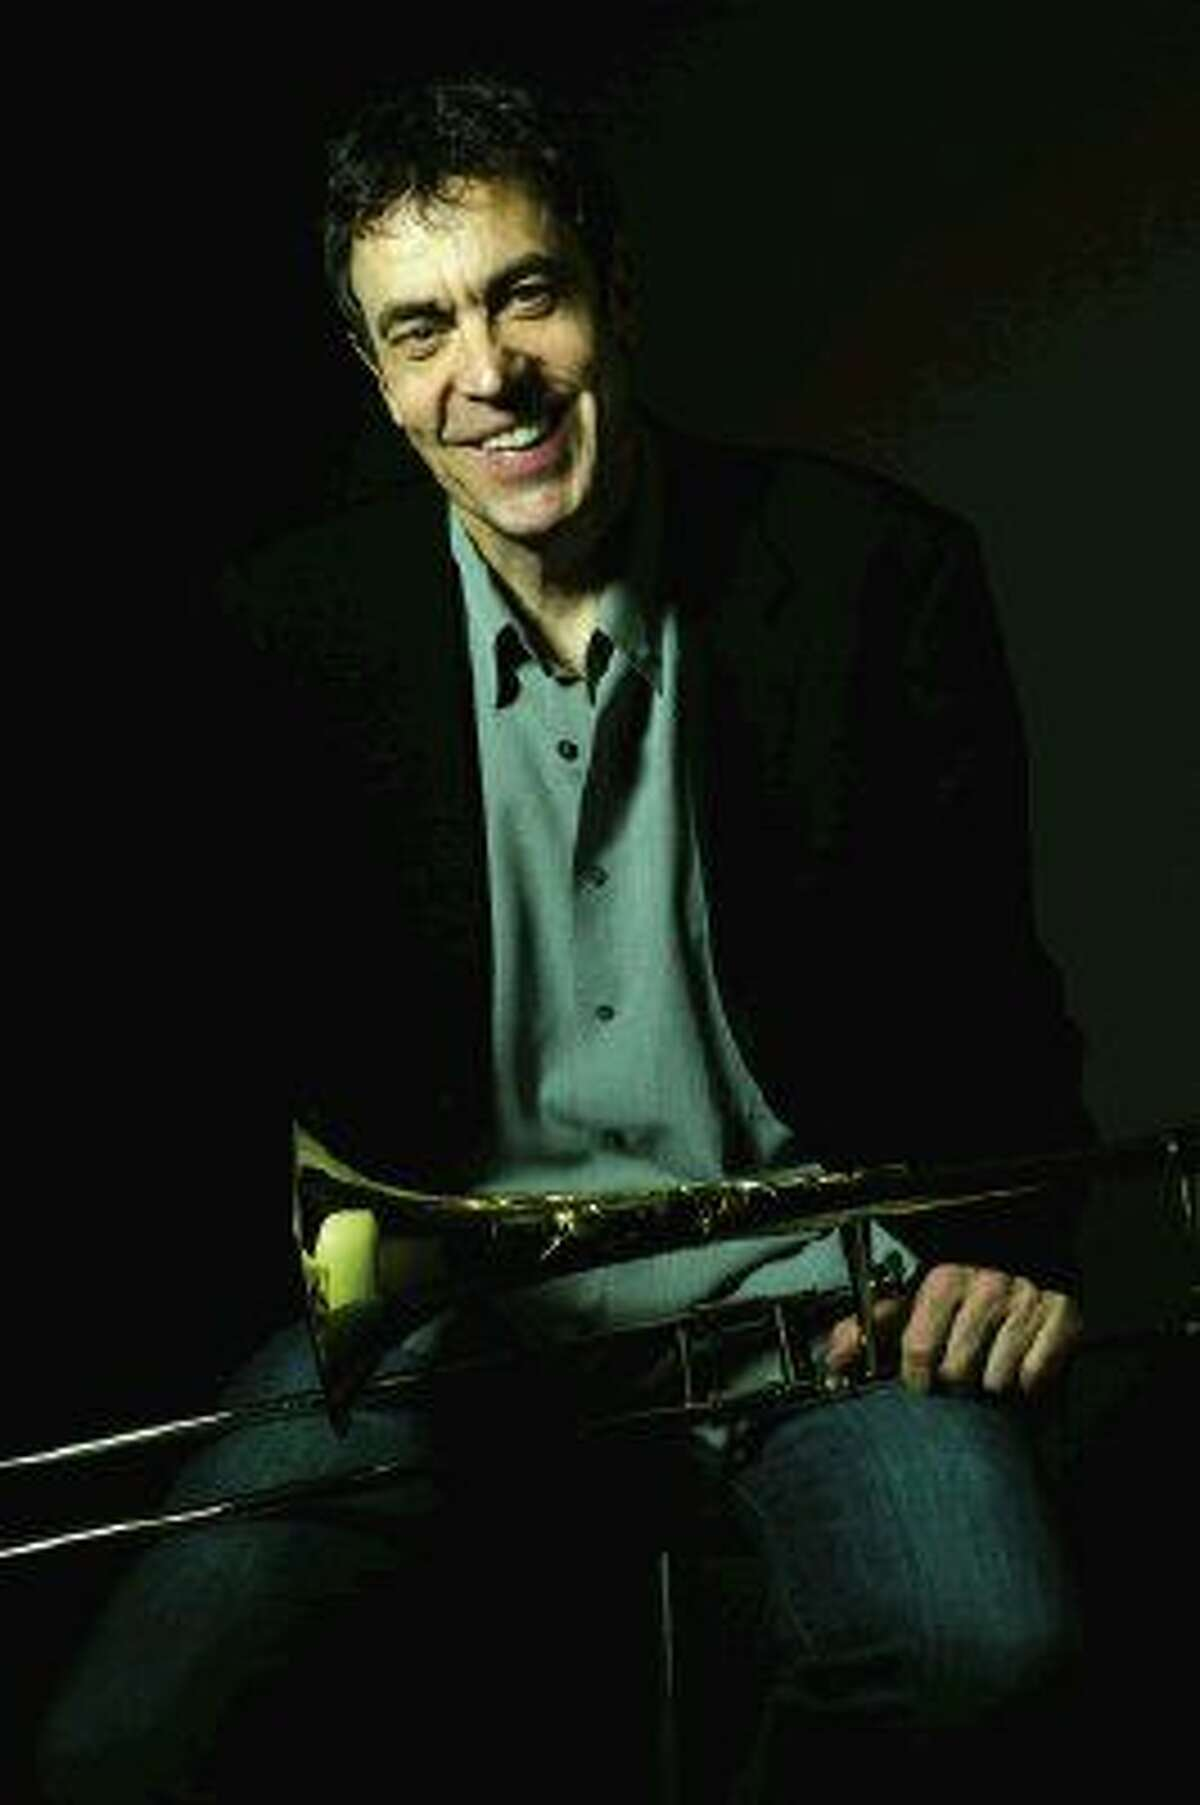 Acclaimed trombonist and composer Michael Davis is widely known for his work with The Rolling Stones and the legendary Frank Sinatra.